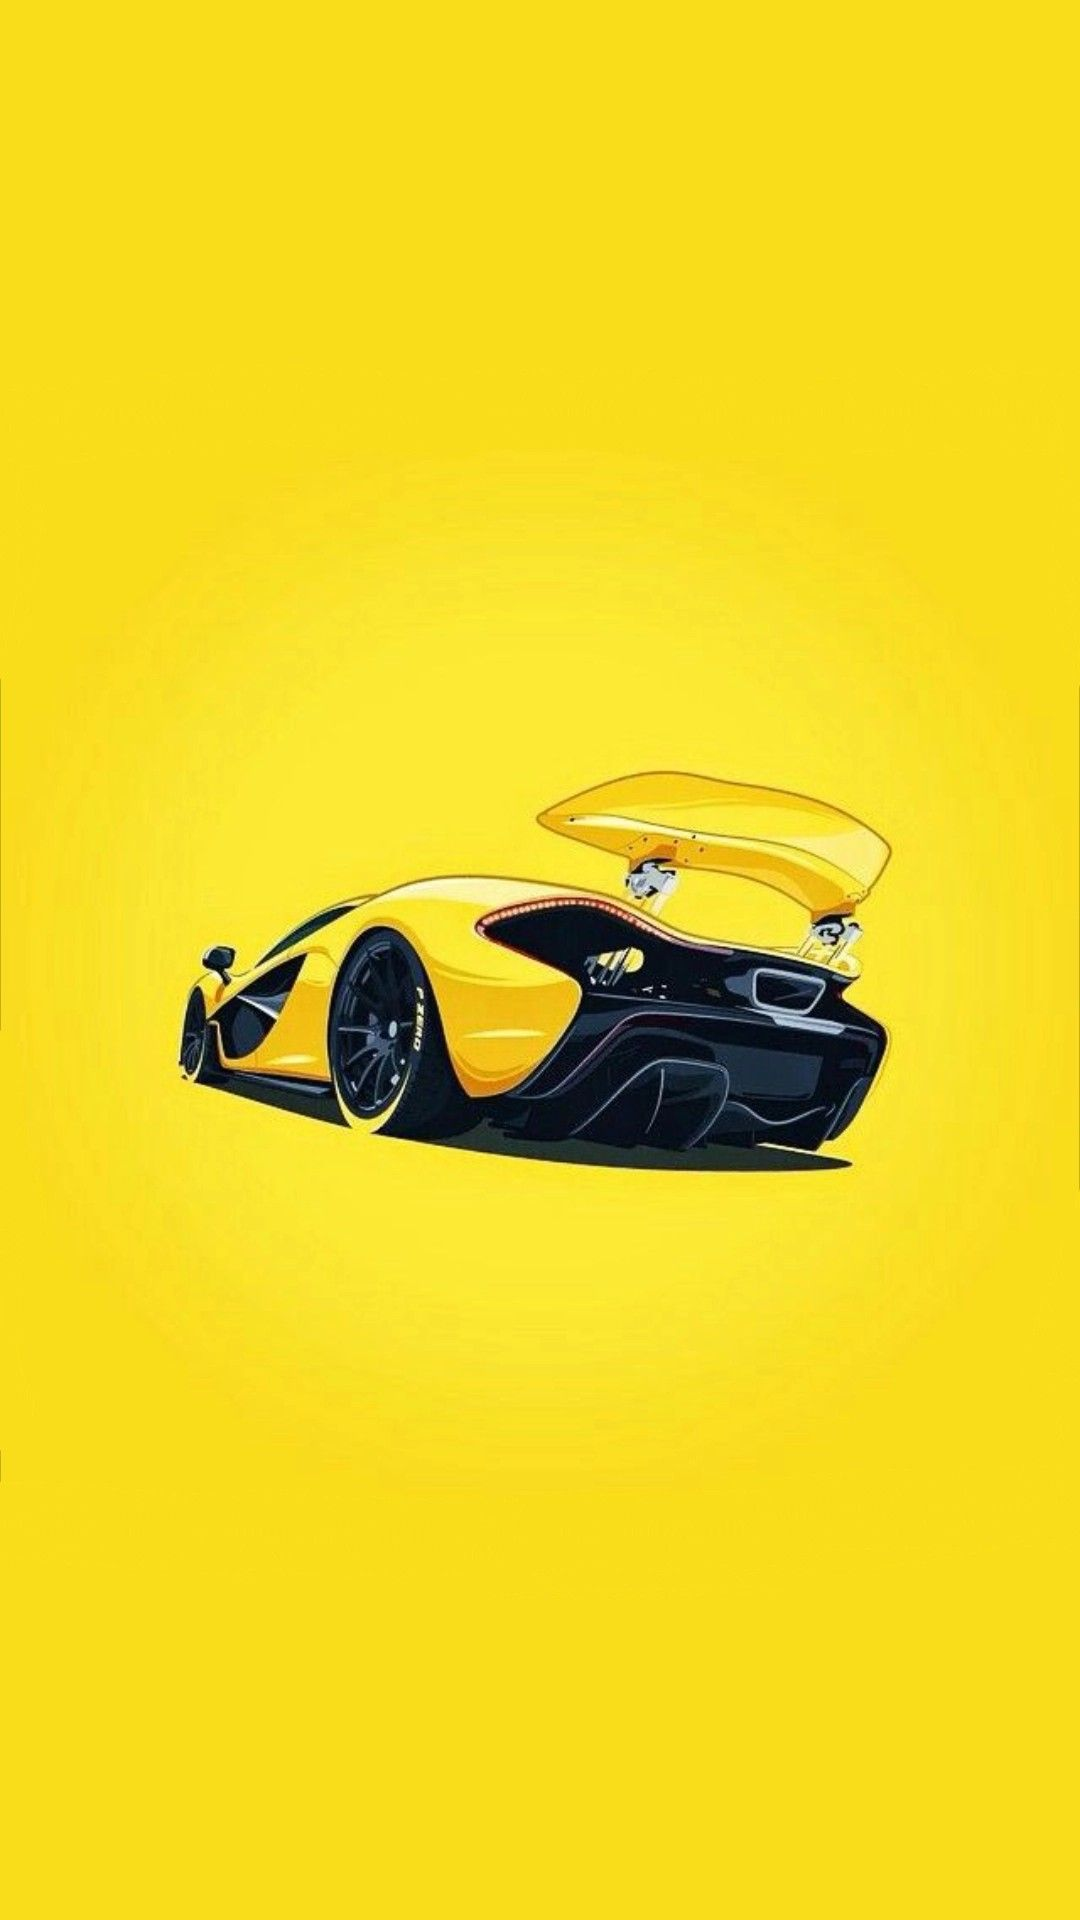 We've gathered more than 5 million images uploaded by our users and sorted them by the most popular ones. 35 Jdm Wallpaper Ideas Jdm Wallpaper Art Cars Jdm